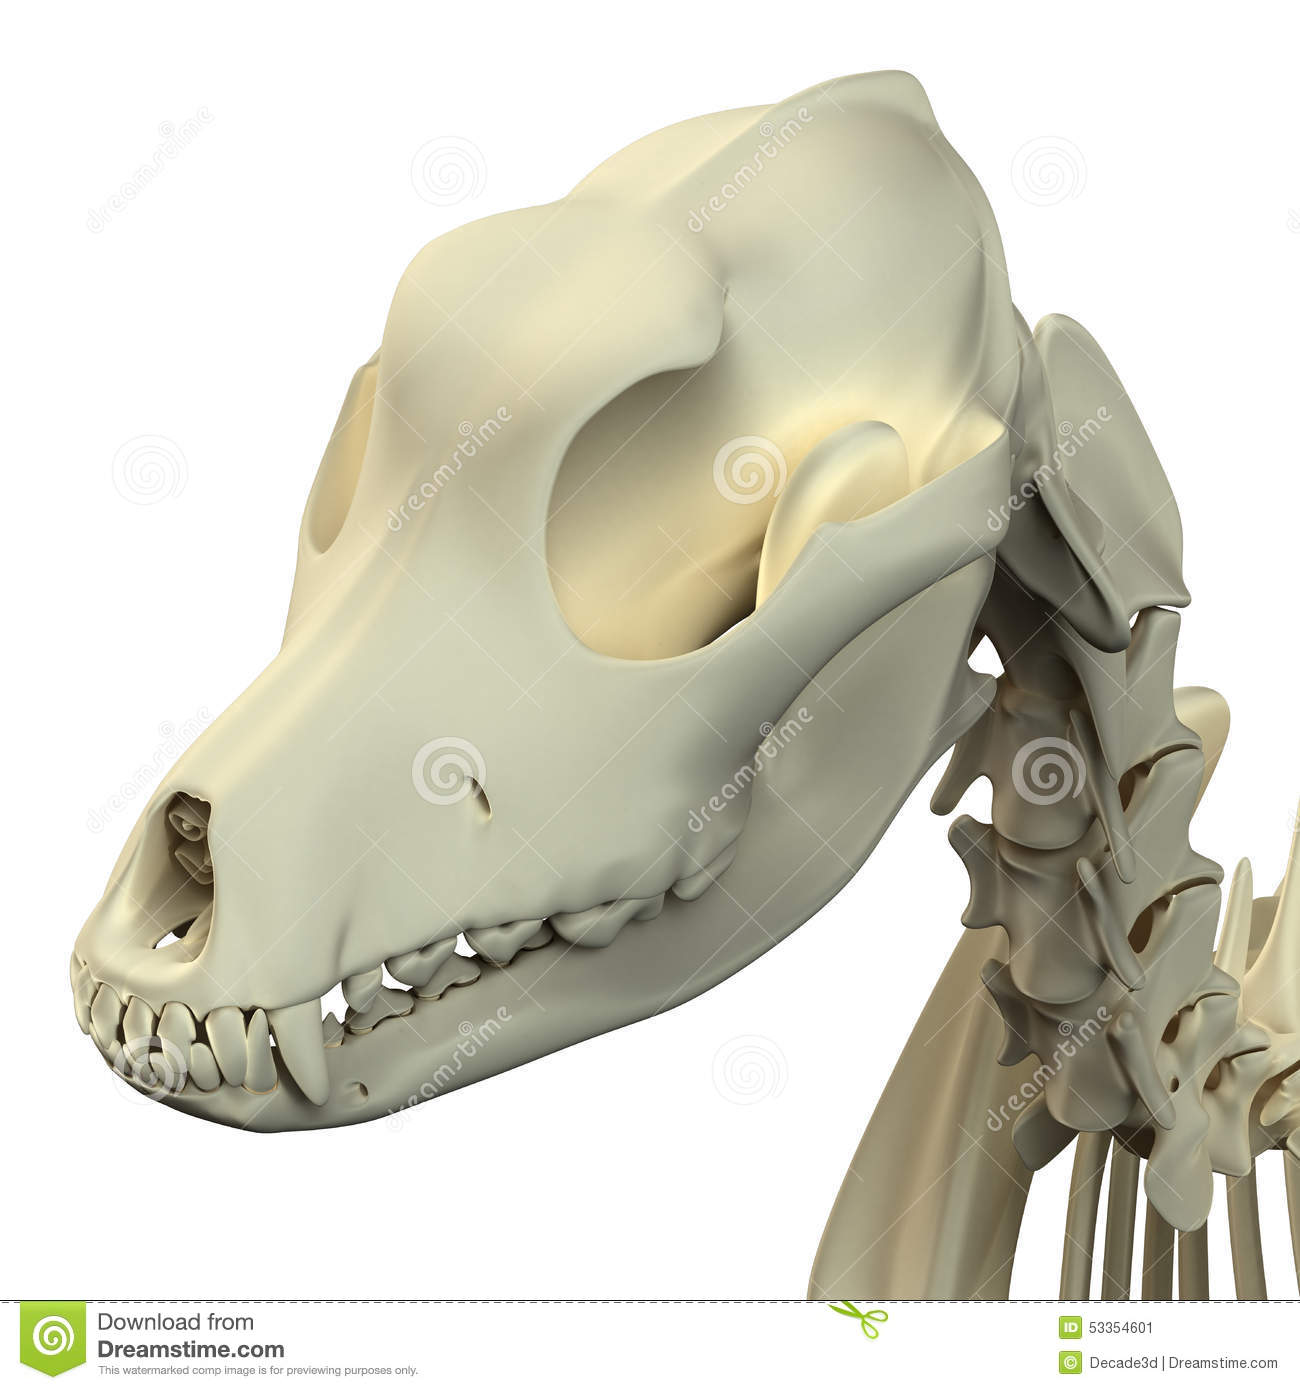 Dog Skull Anatomy - Anatomy Of A Male Dog Skull Stock Image - Image ...